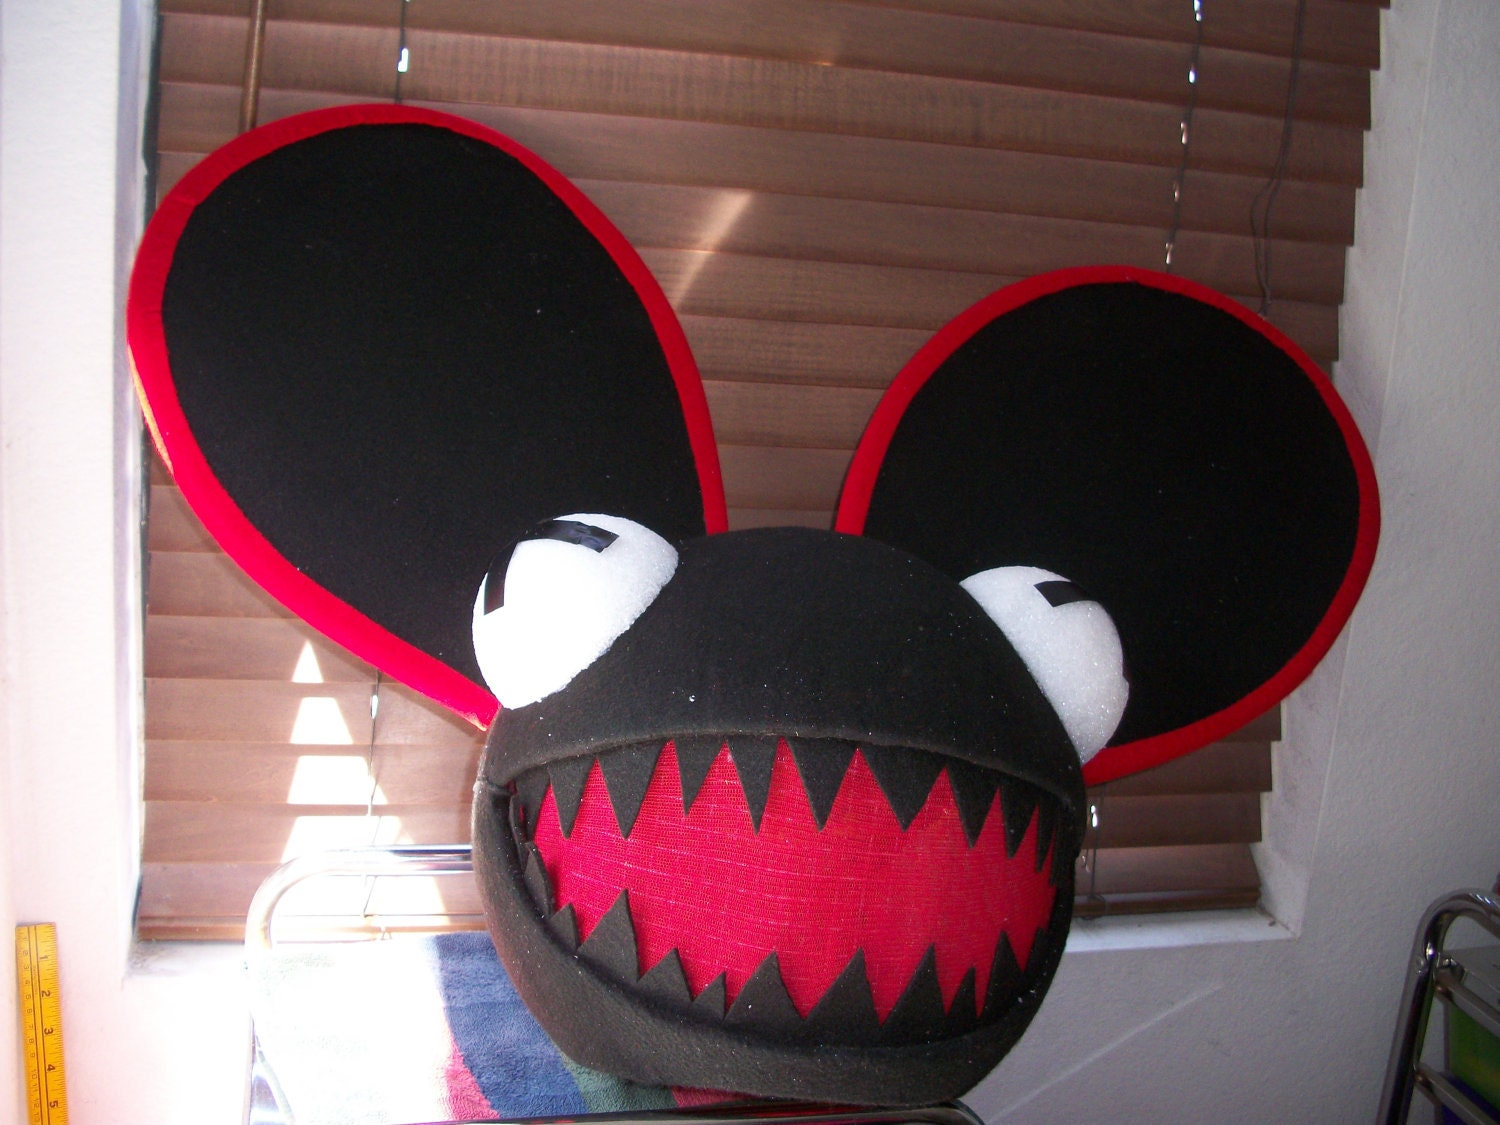 replica evil deadmau5 head mouse halloween mask dj concerts - Deadmau5 Halloween Head